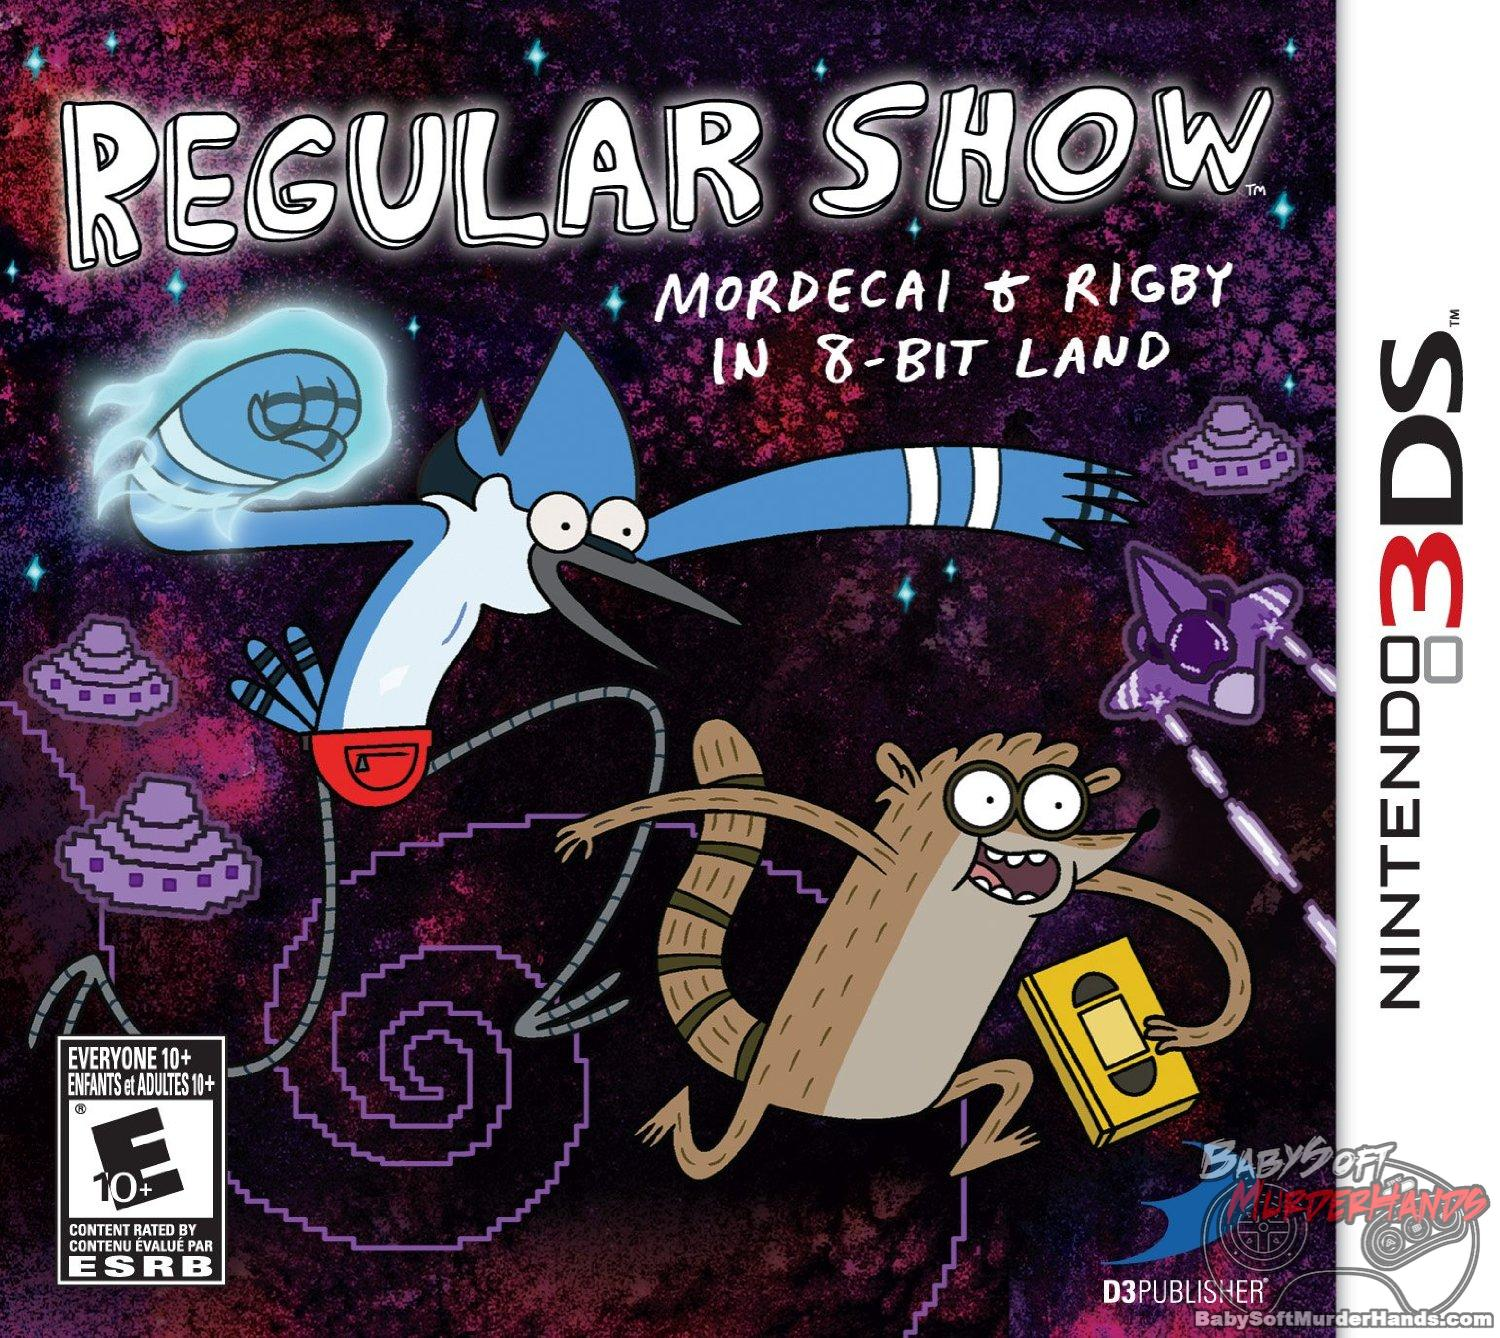 Regular Show: Mordecai and Rigby in 8-bit Land (D3 Publisher) CHeap 3ds games